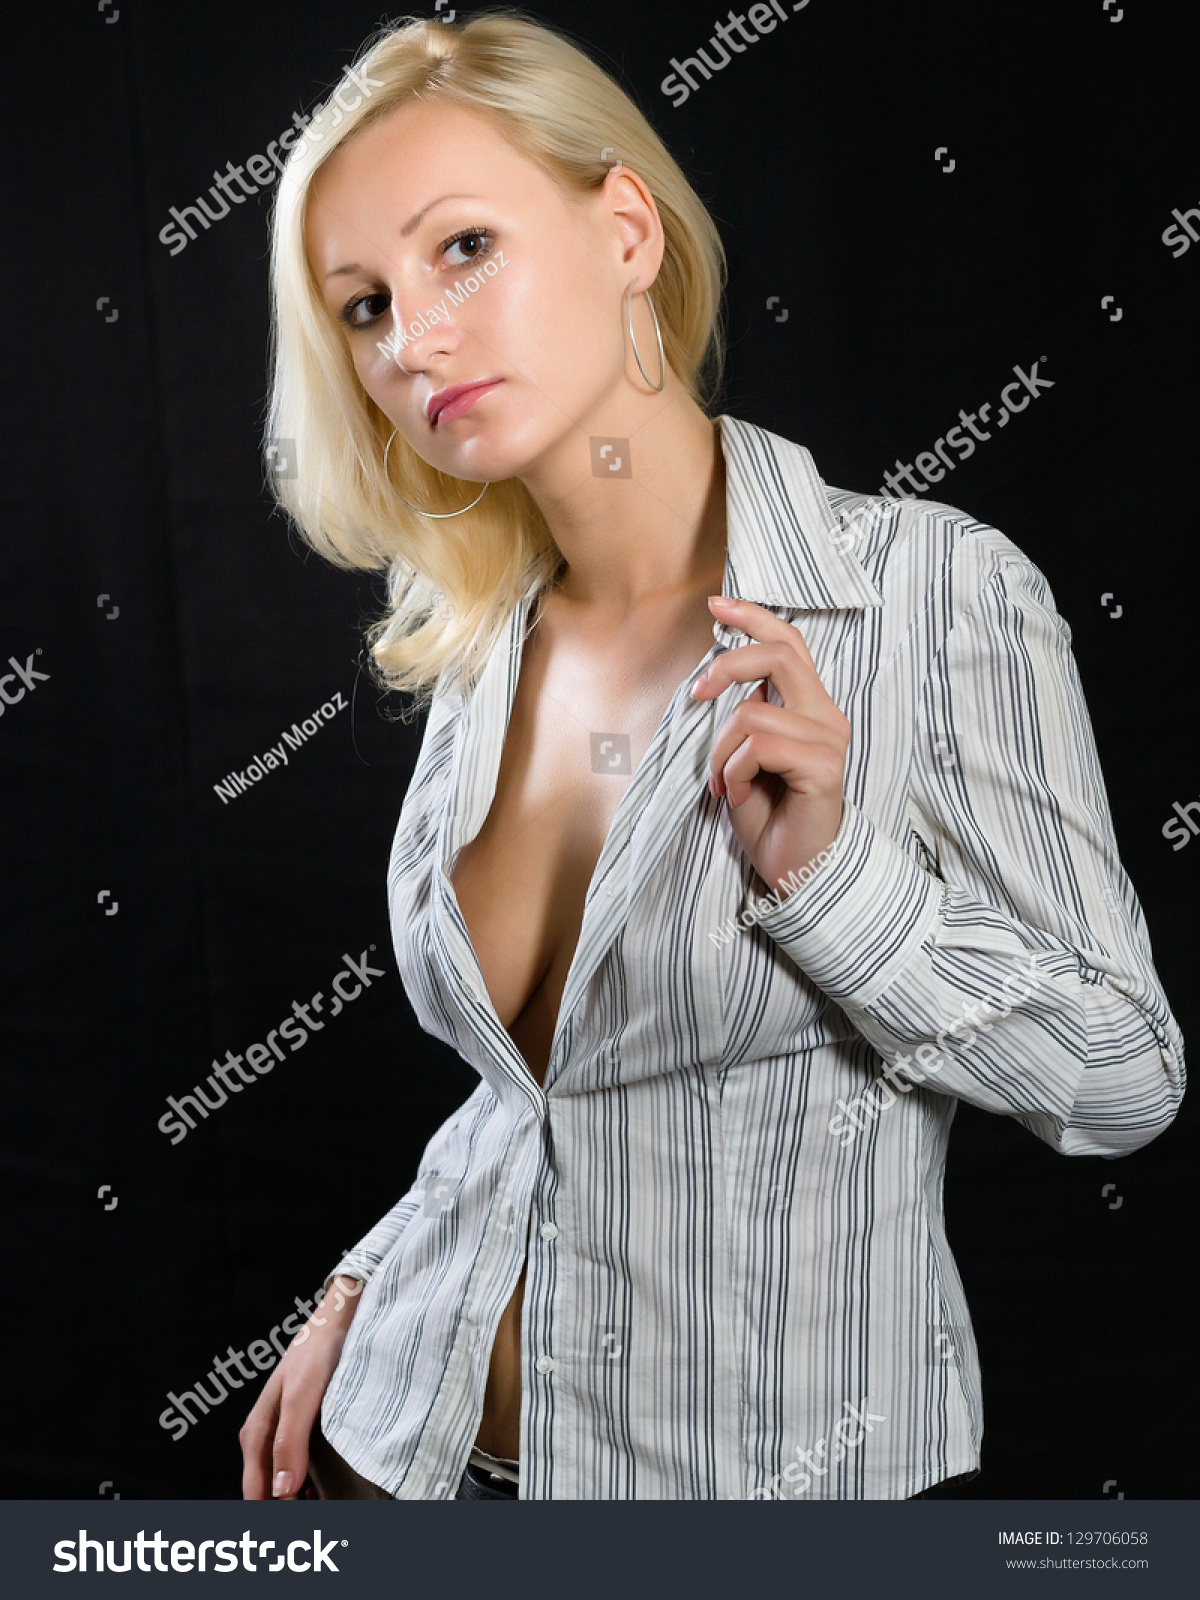 Woman With Blouse Unbuttoned 24